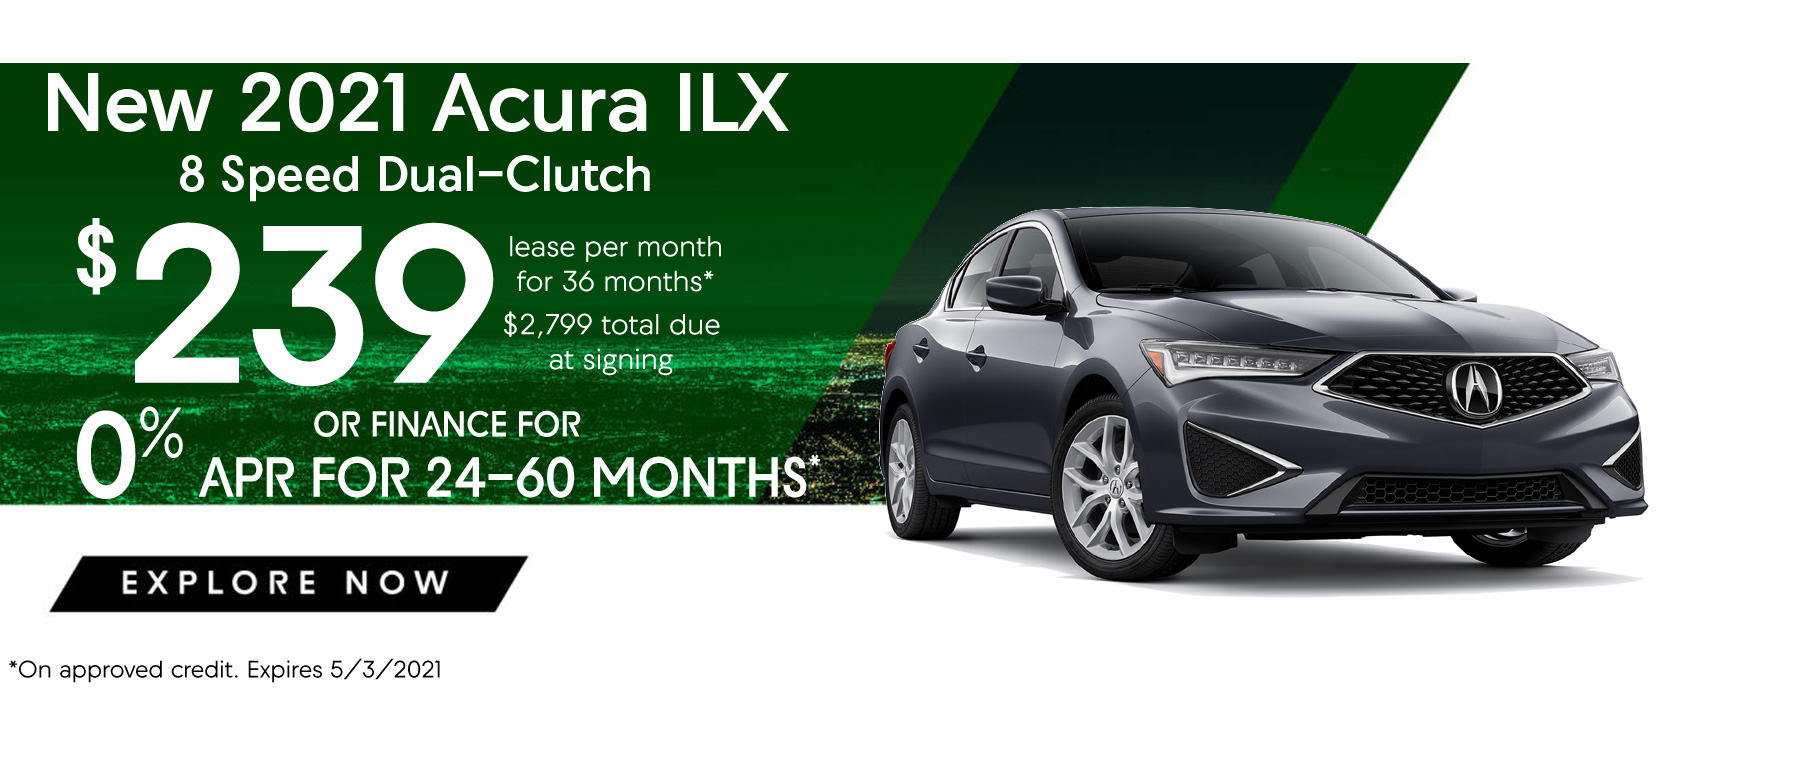 2021 Acura ILX Lease and APR Special